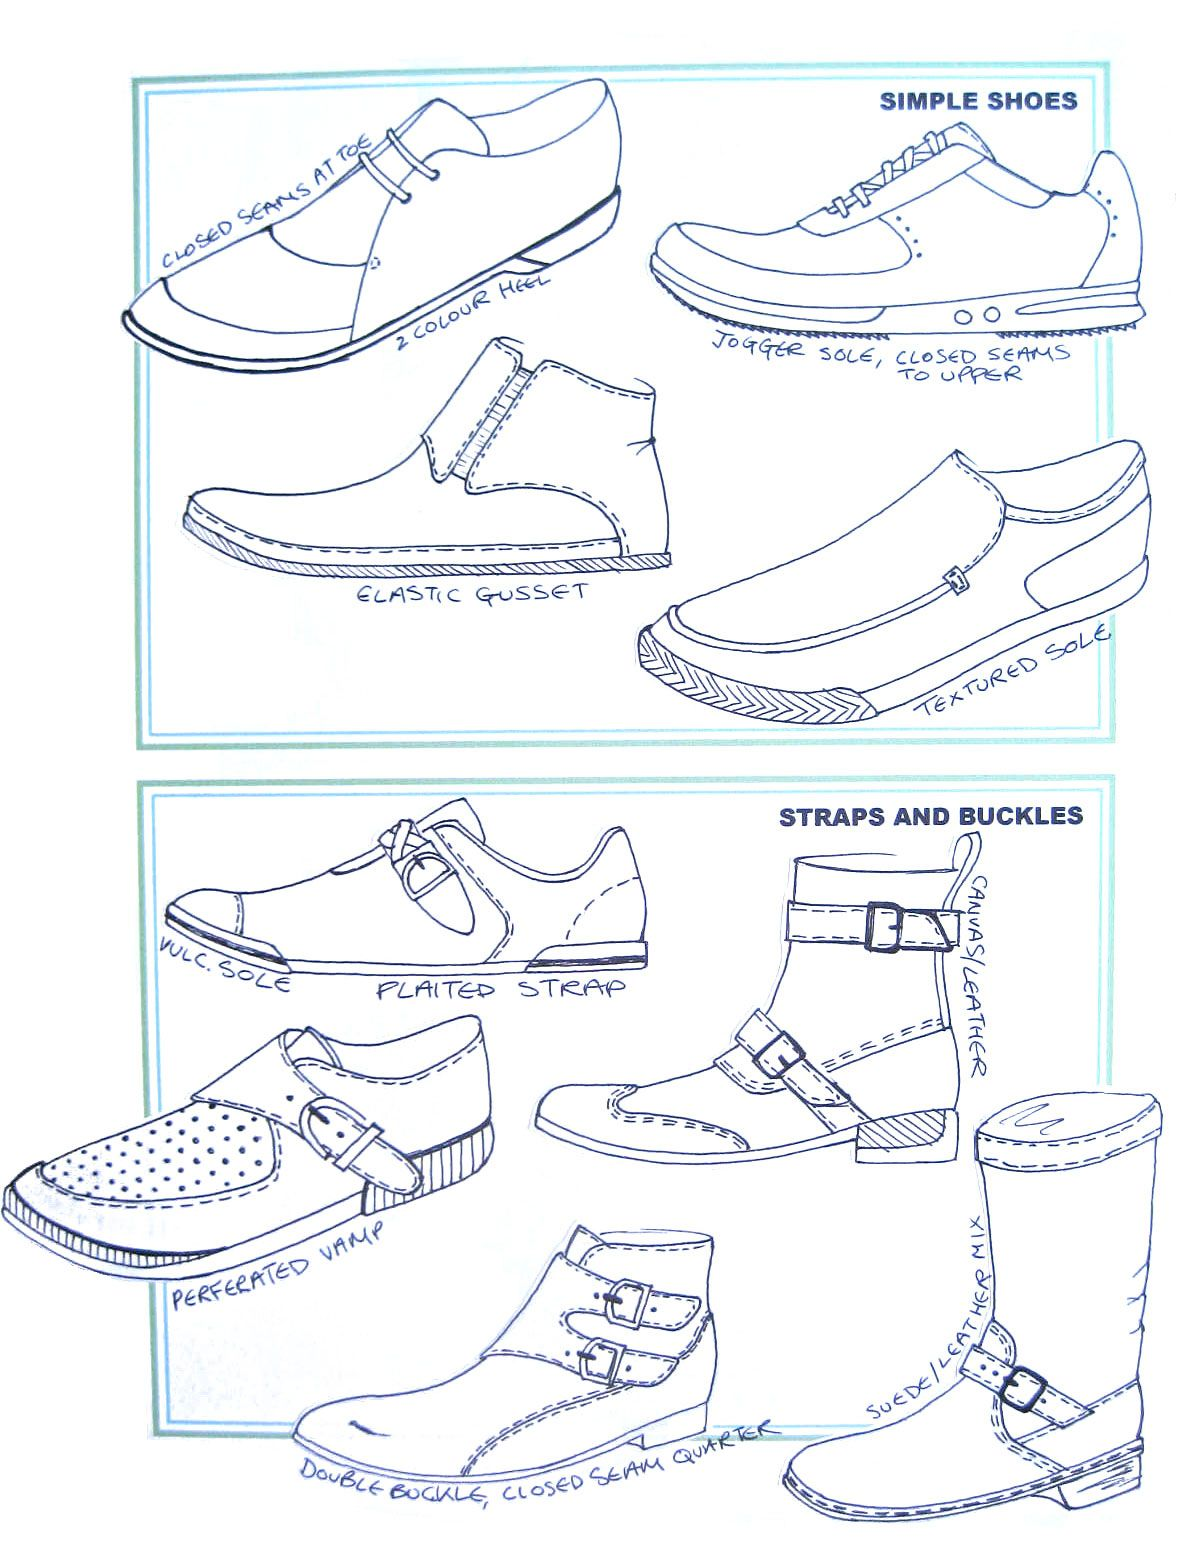 Chart of simple shoes, and shoes with straps and buckles